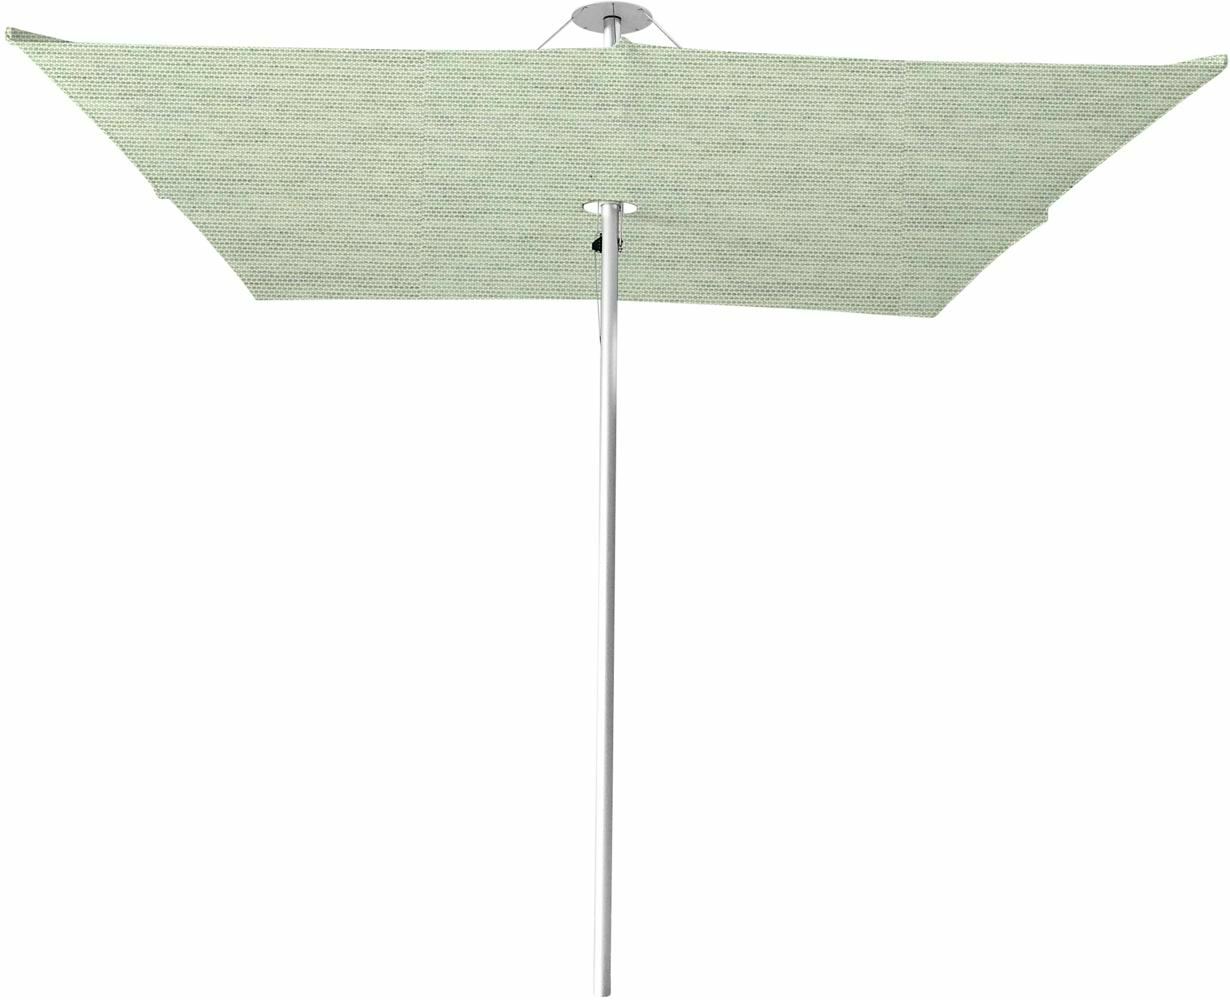 Infina canopy square 2,5 m in colour Mint